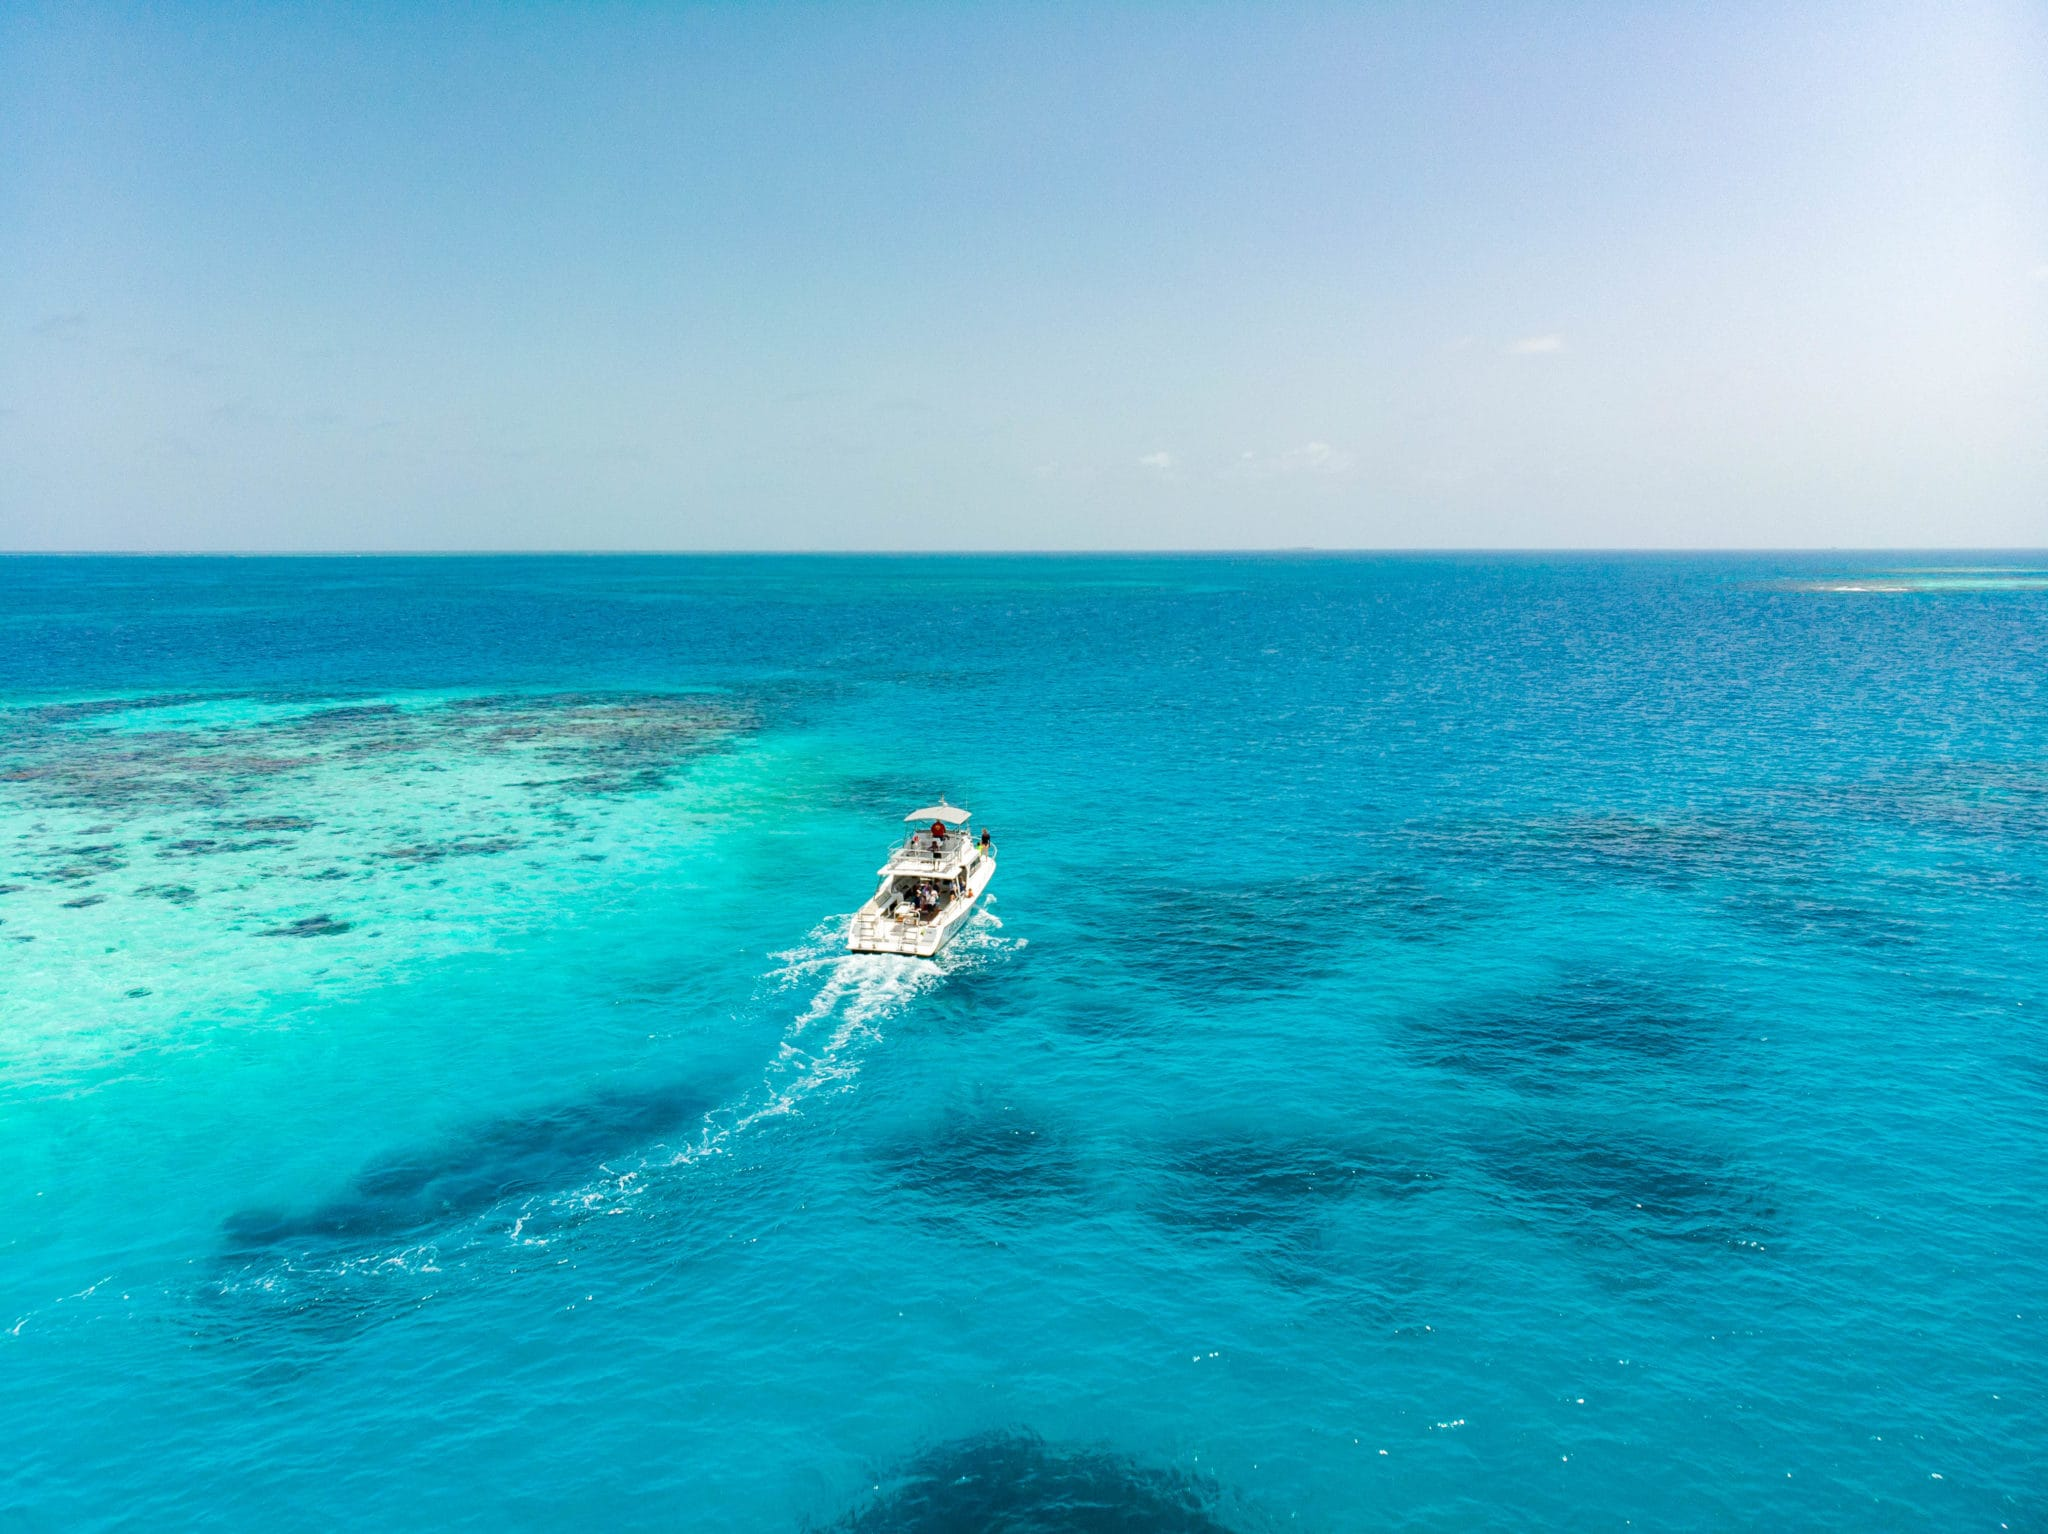 SCUBA Belize is a Clear Choice For Divers